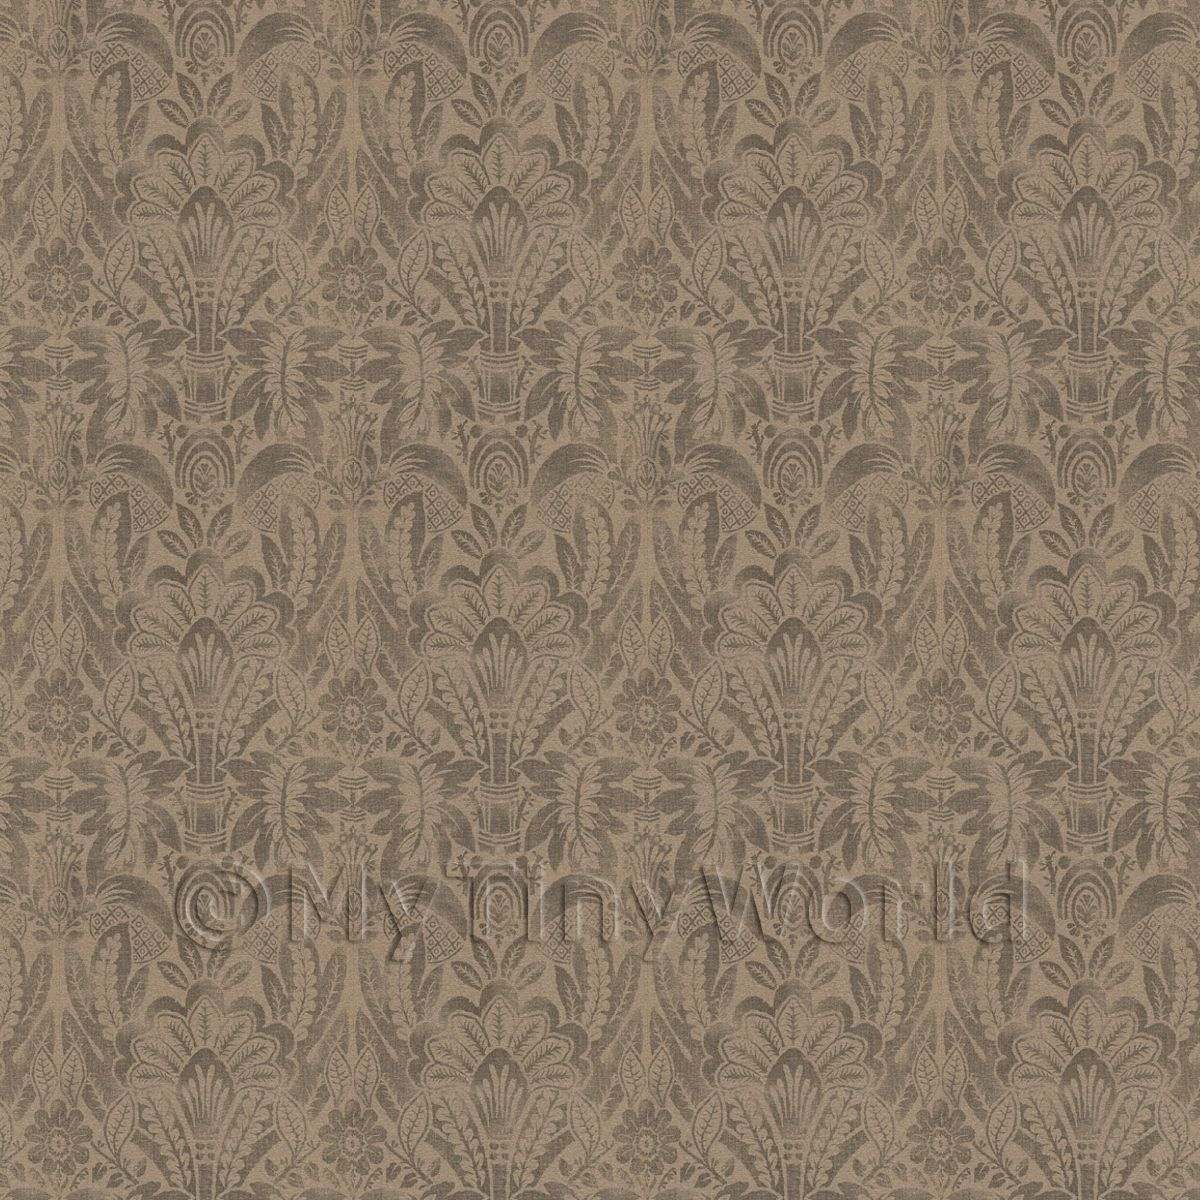 Dolls House Miniature Intricate Pale Gold On Brown Wallpaper